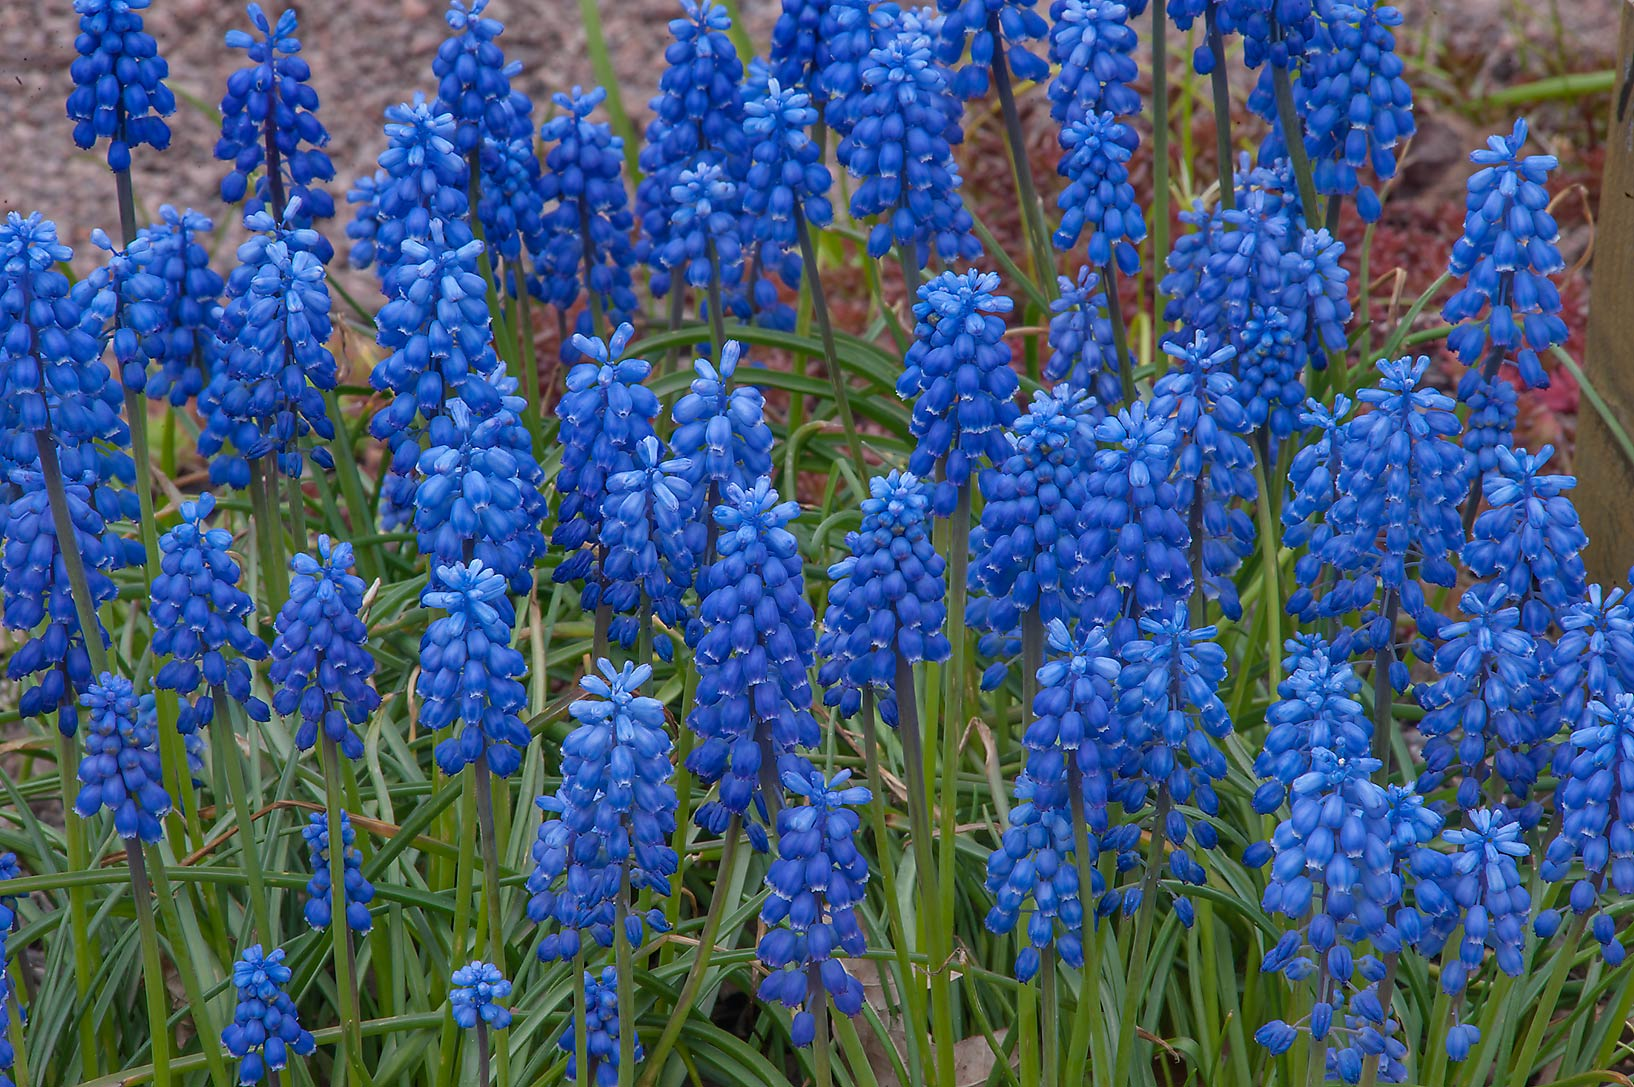 Dense stand of grape hyacinth (Muscari) in...Institute. St.Petersburg, Russia